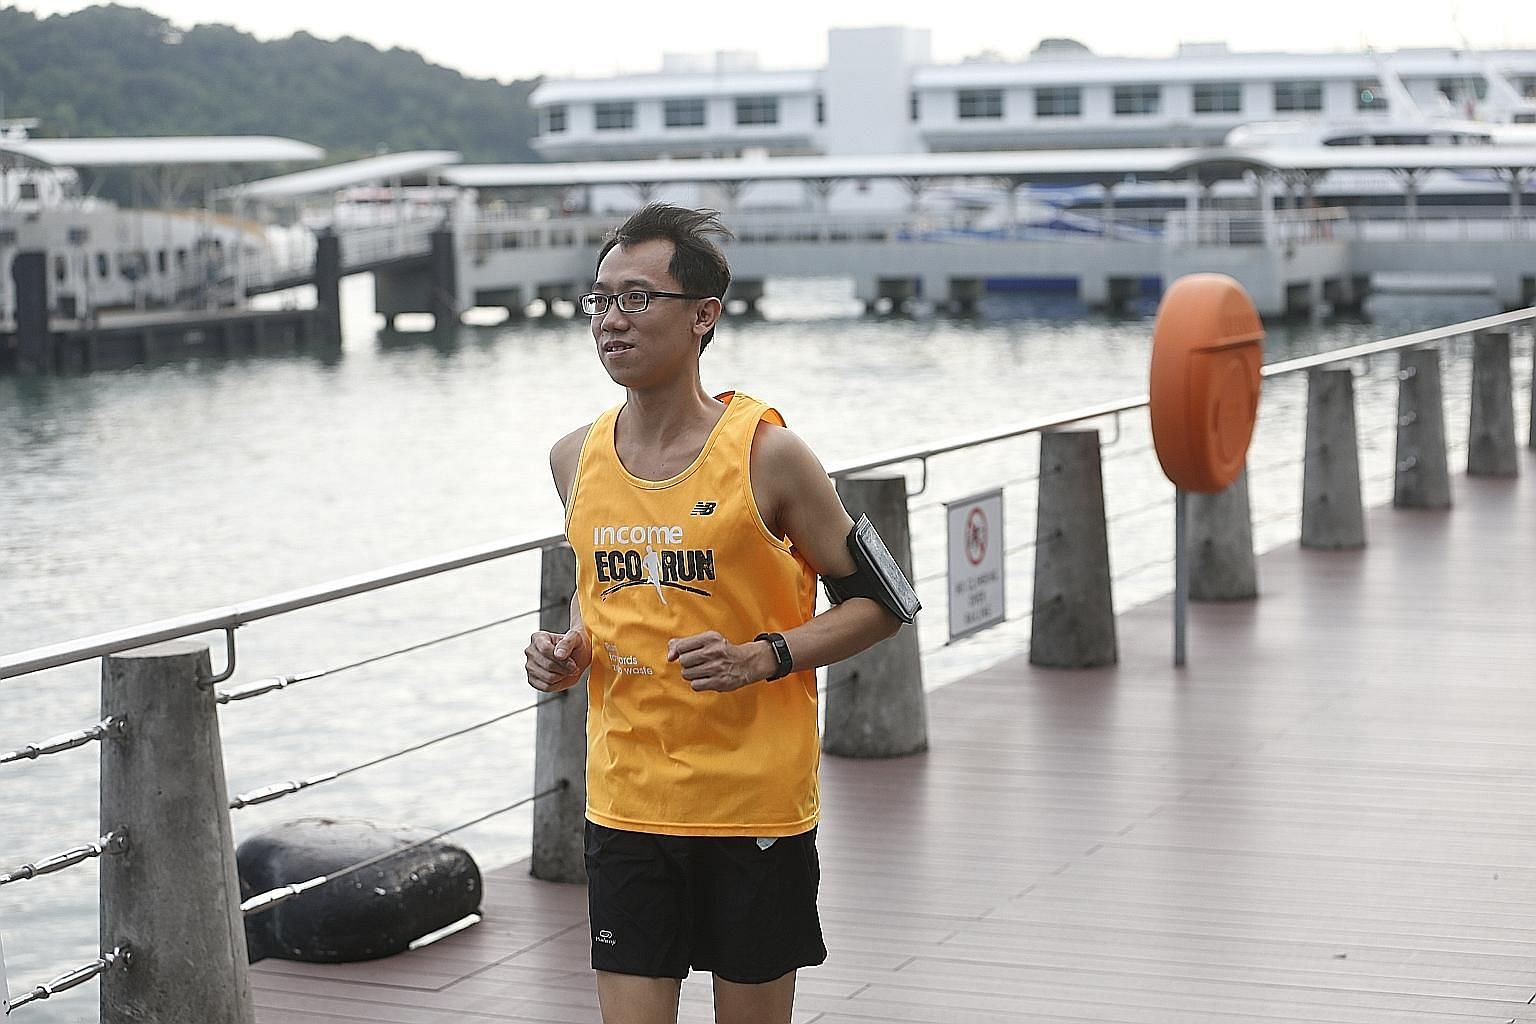 Financial adviser Mak Kwok Fai will take part in his first The Straits Times Run next month, 10 years after the stroke that left him in a wheelchair for a few months. He will be running 10km with a group from the Singapore National Stroke Association